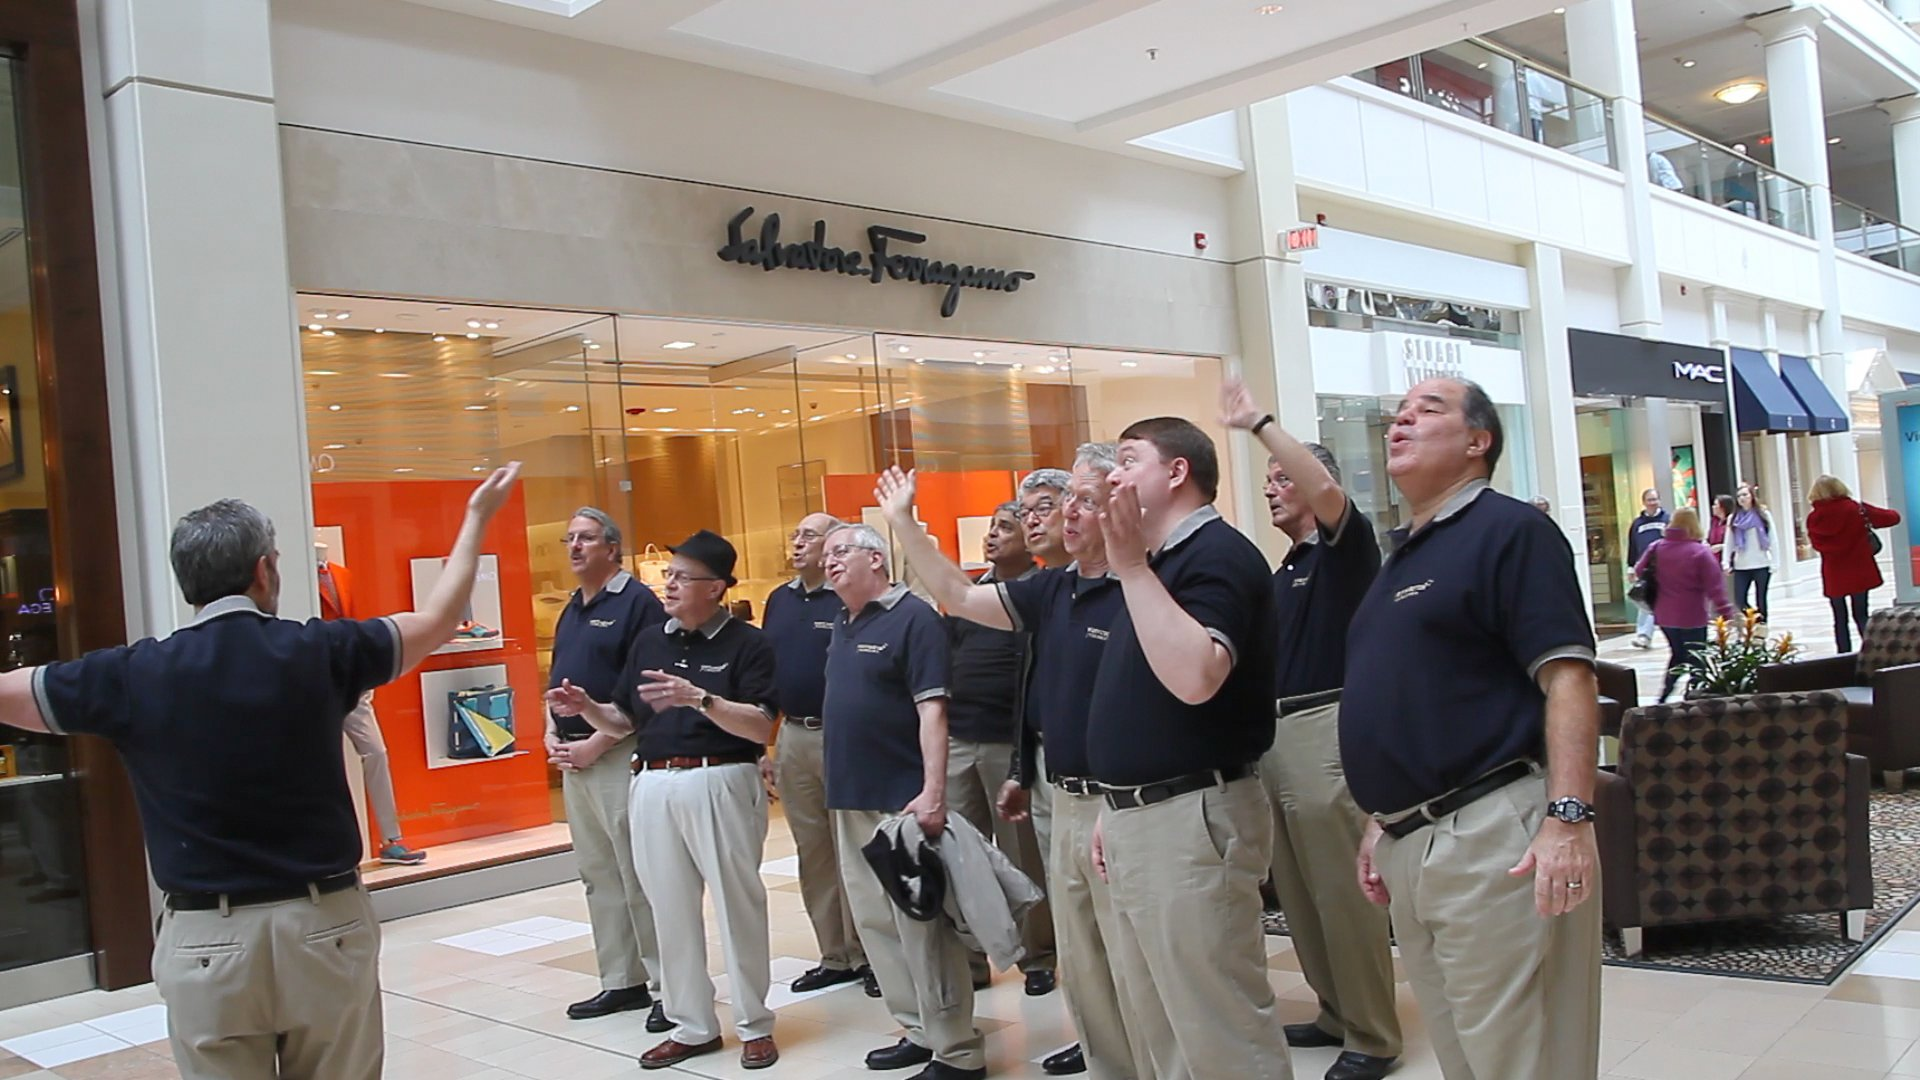 Chordsmen take the Mall!